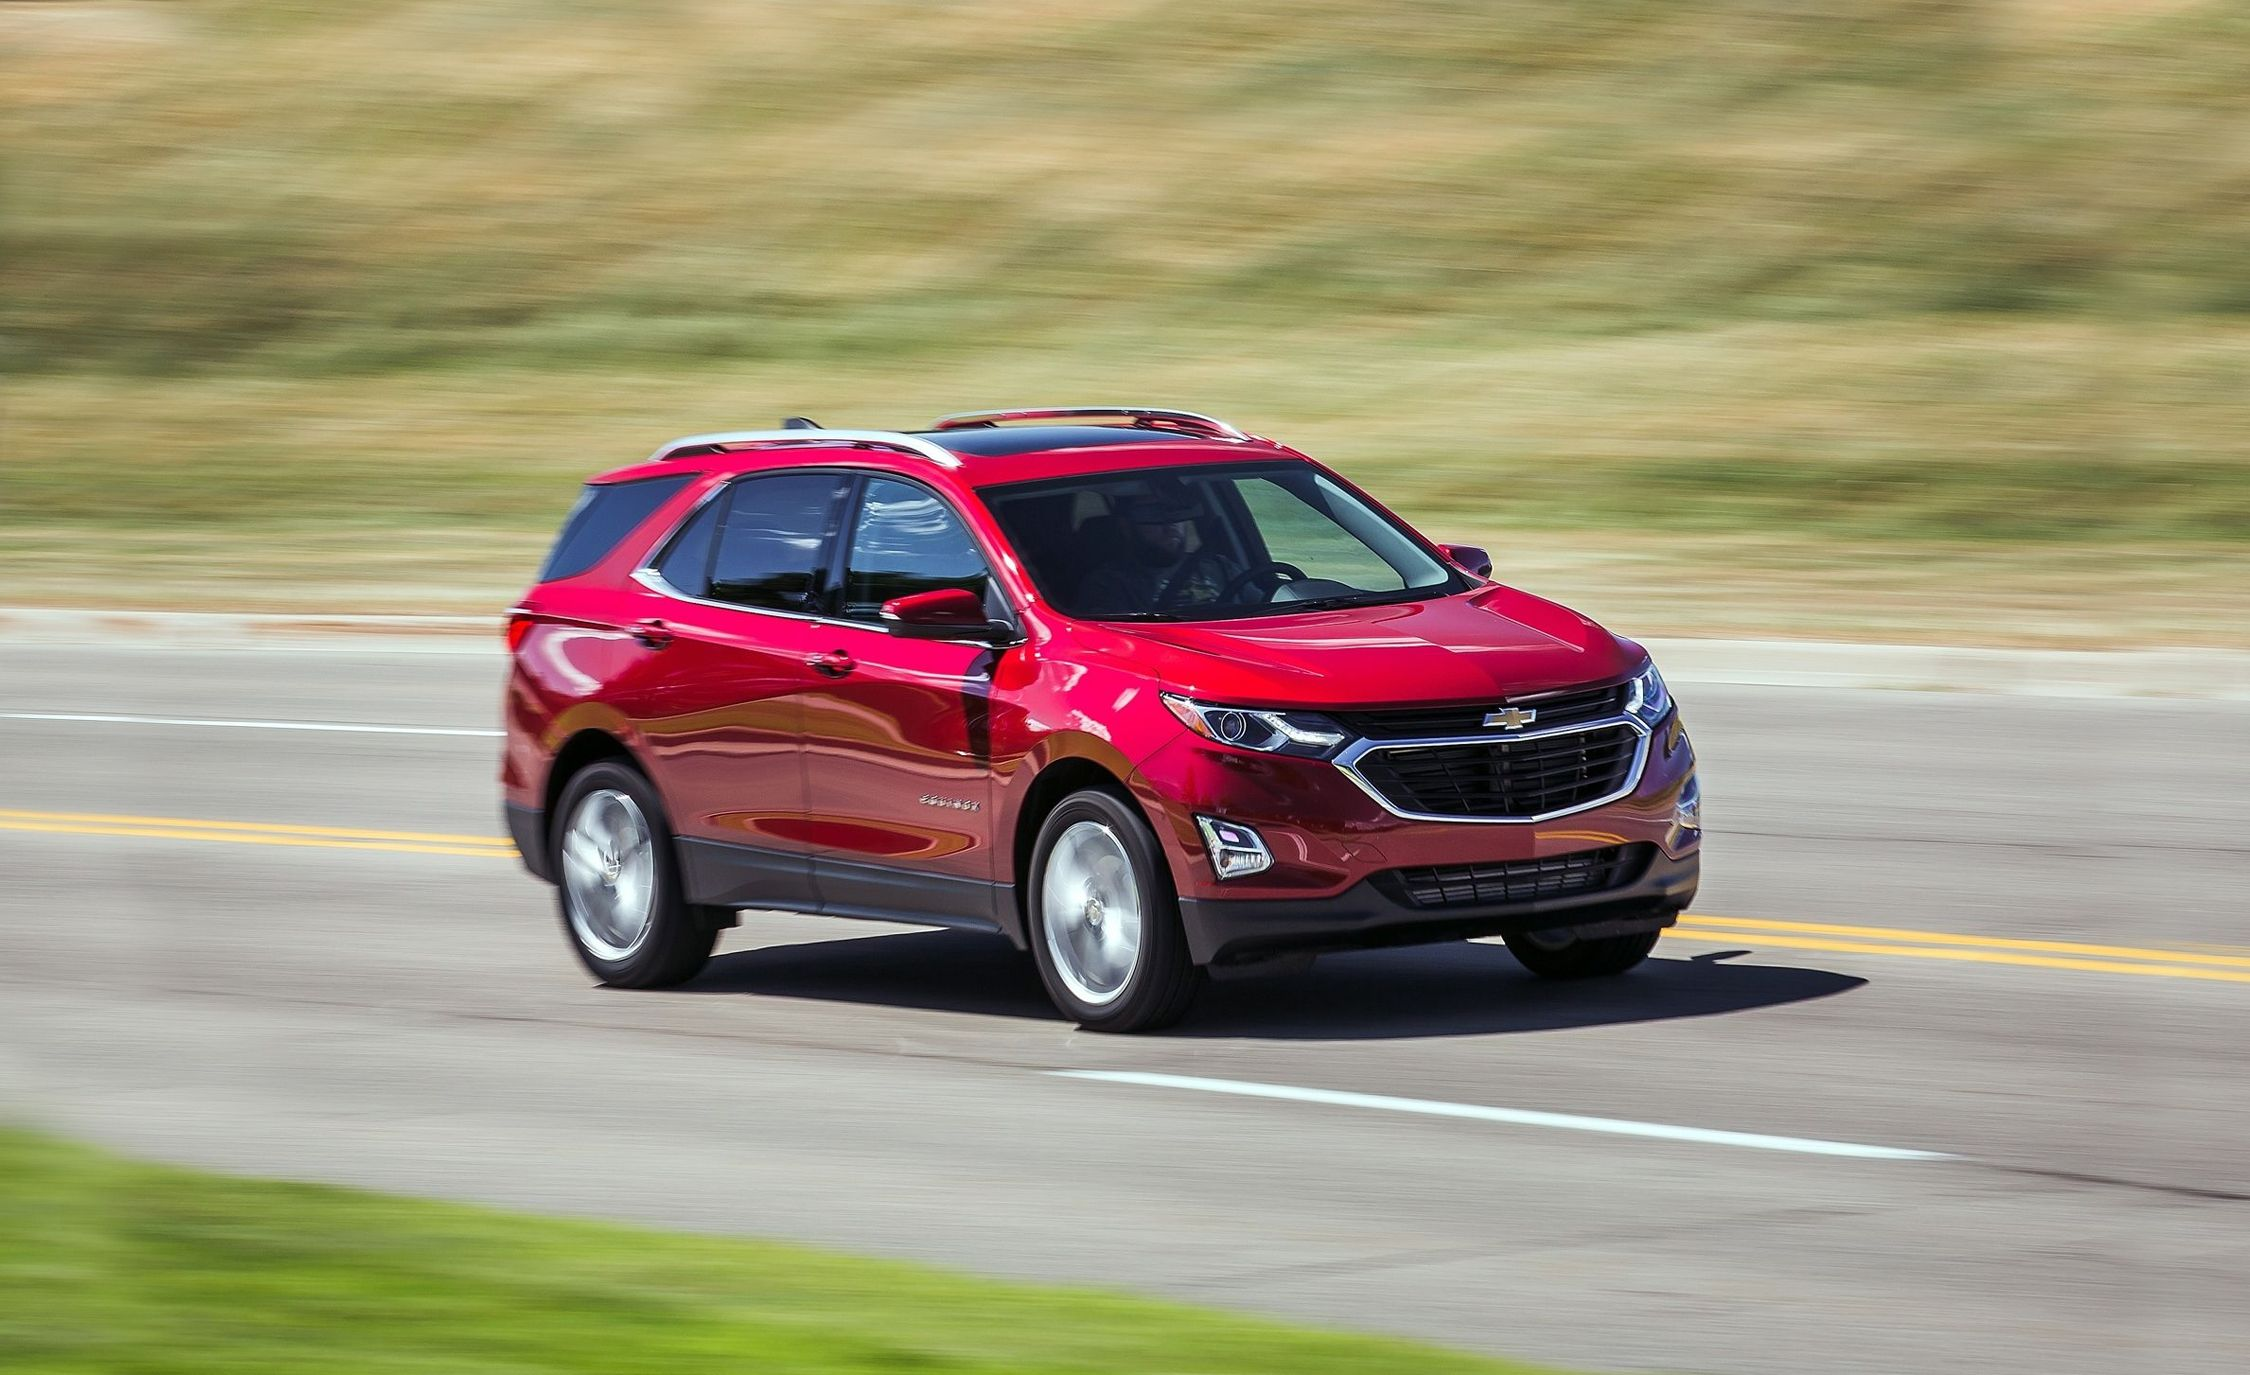 2018 Chevrolet Equinox 2.0T AWD Pictures | Photo Gallery